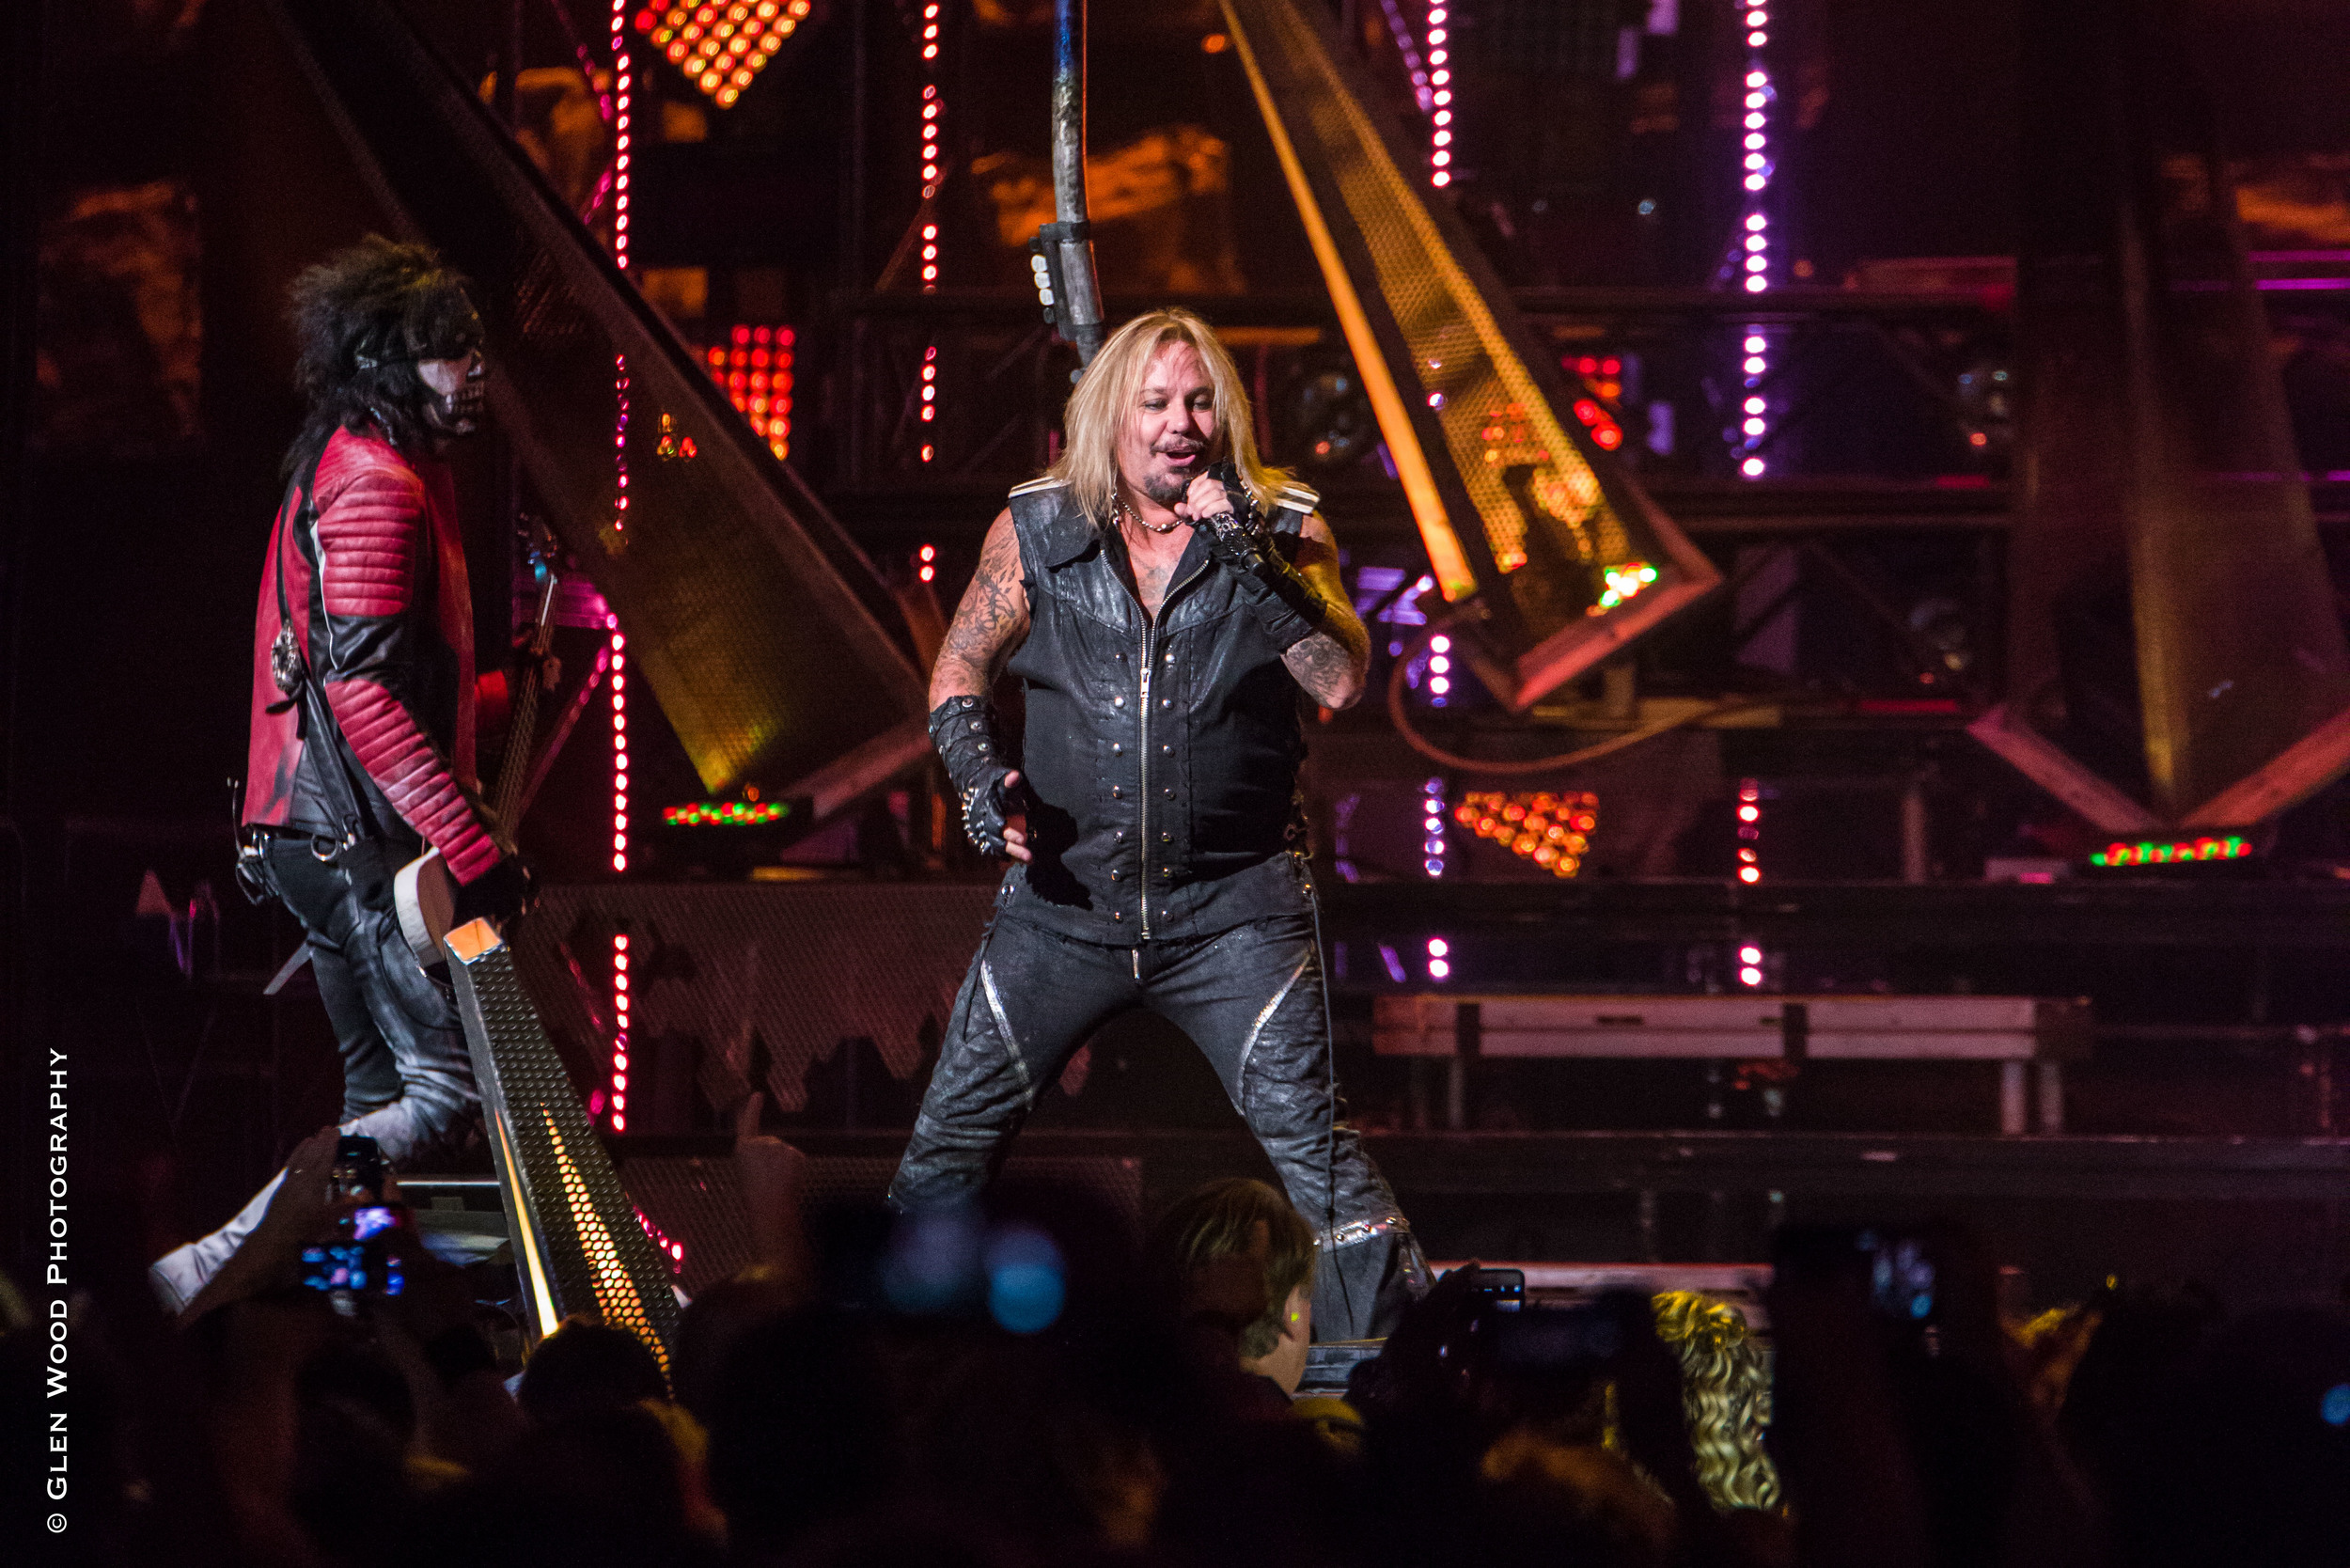 Motley Crue - Final Tour - 2015-4247.jpg